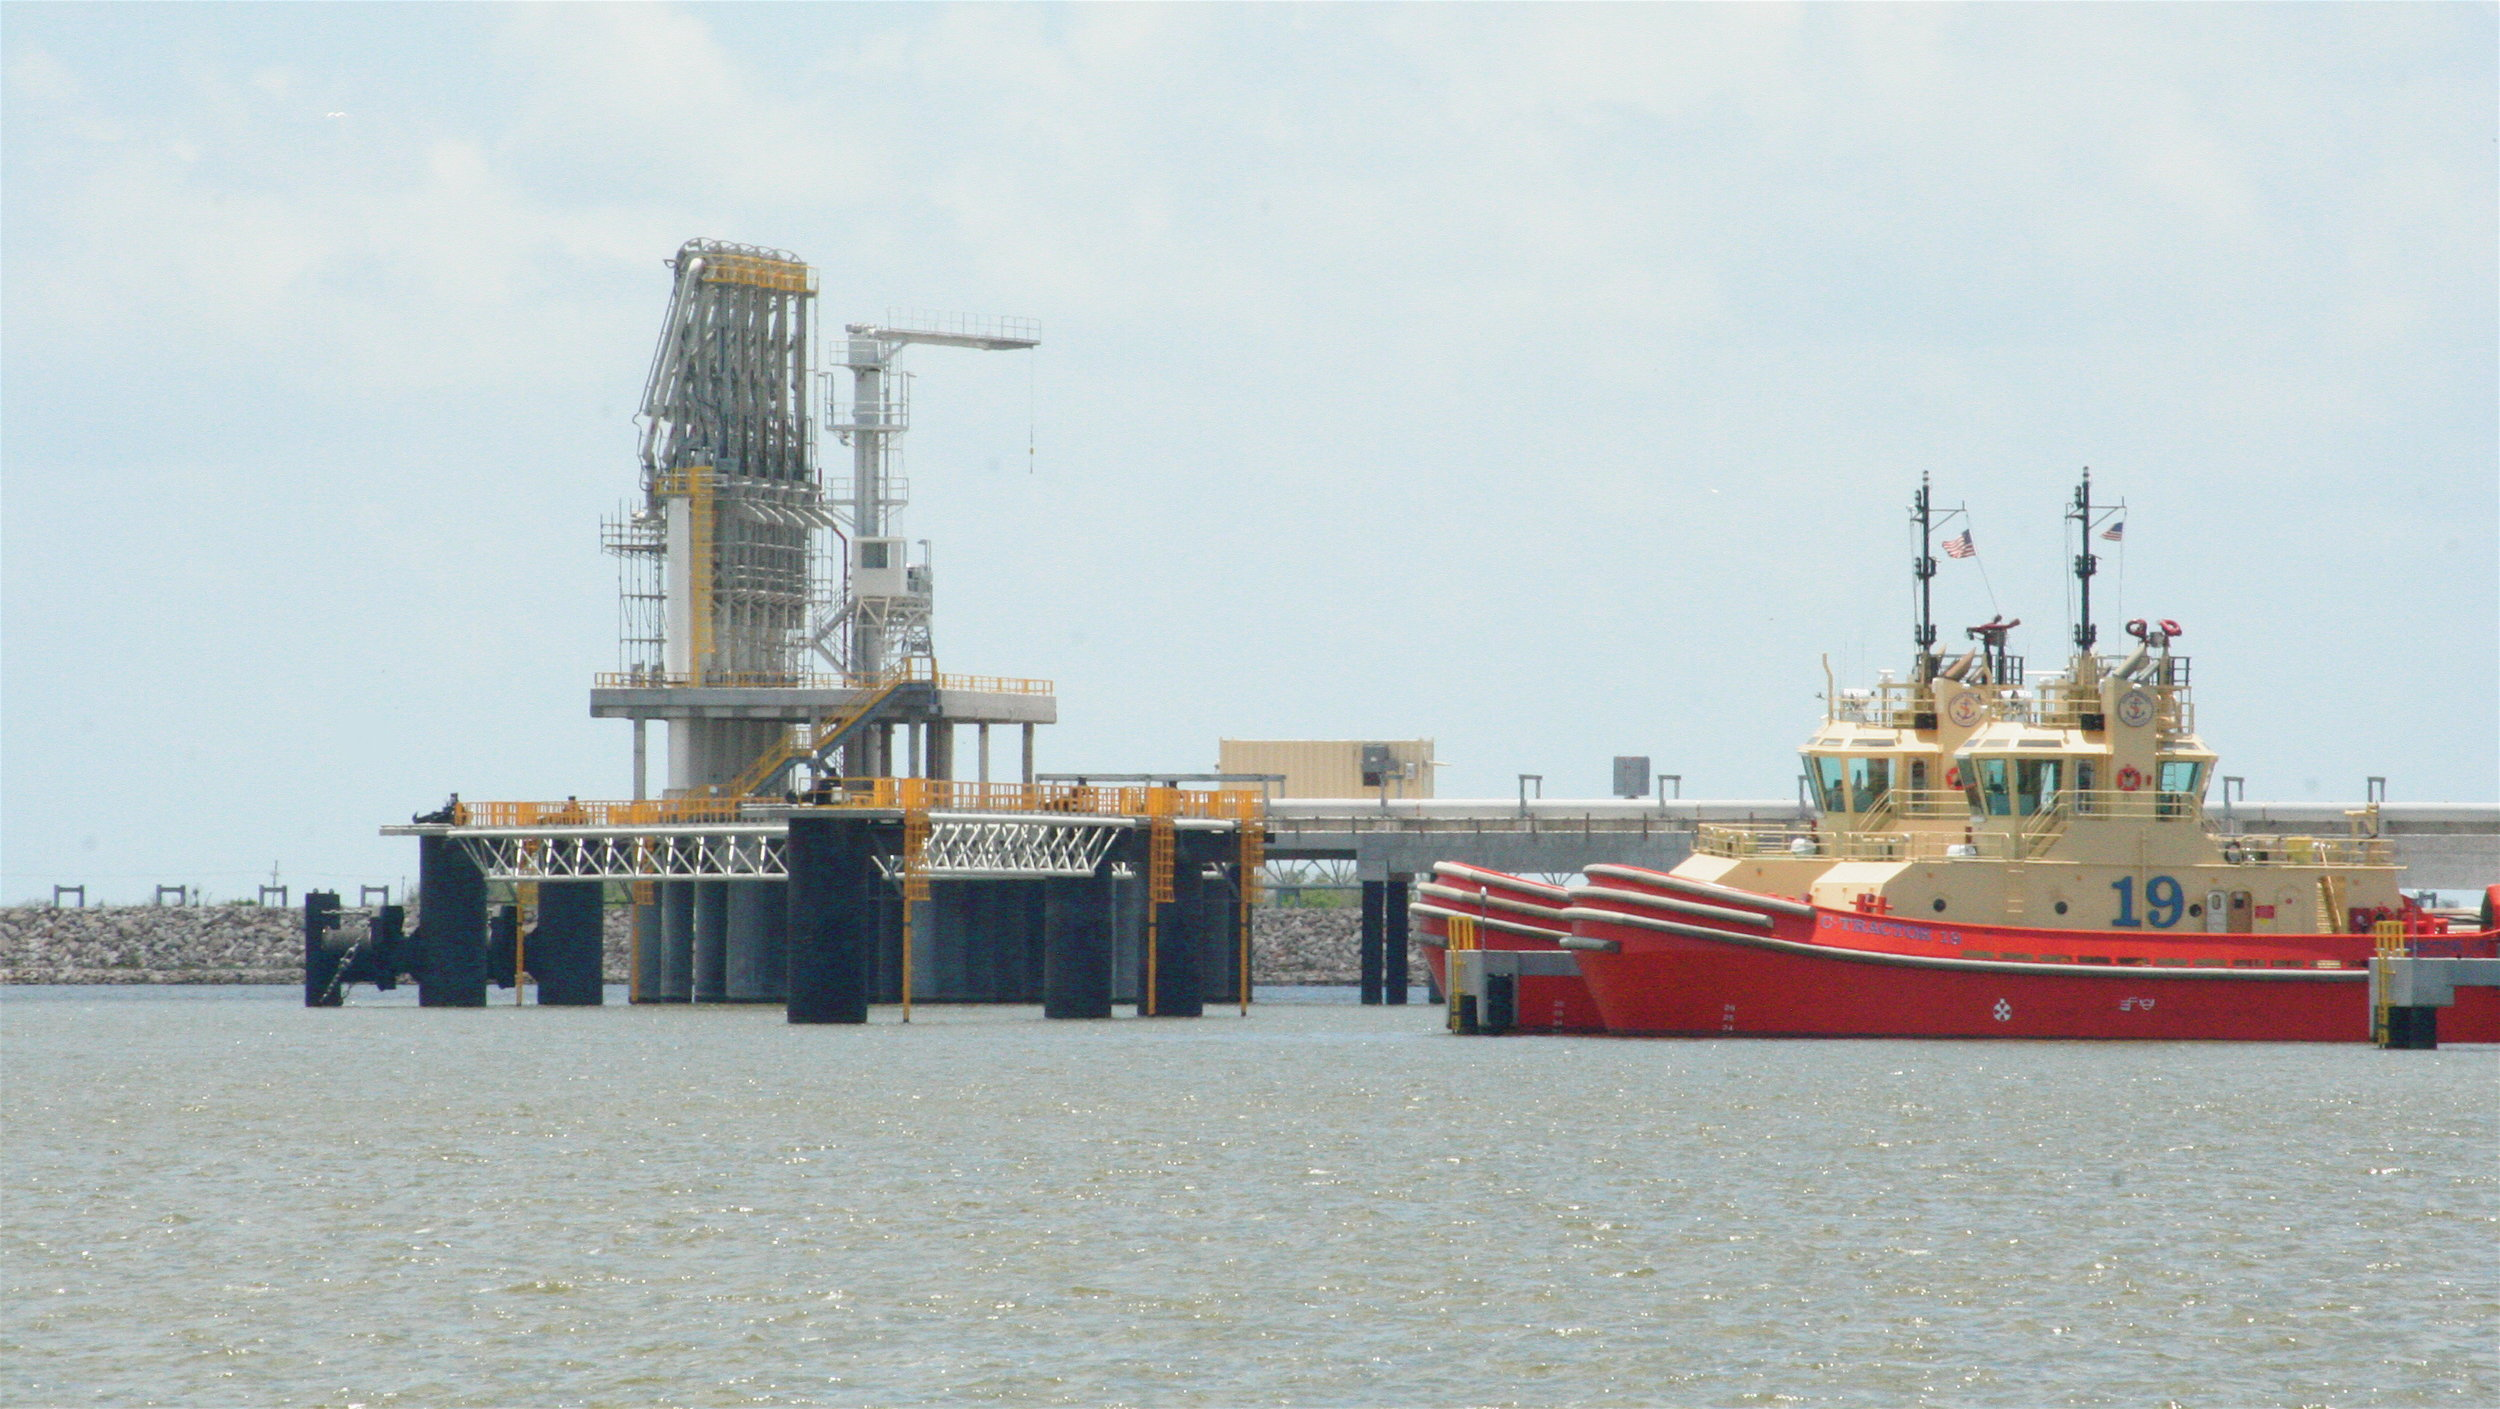 Sabine Pass LNG Terminal. Photo courtesy of Roy Luck.